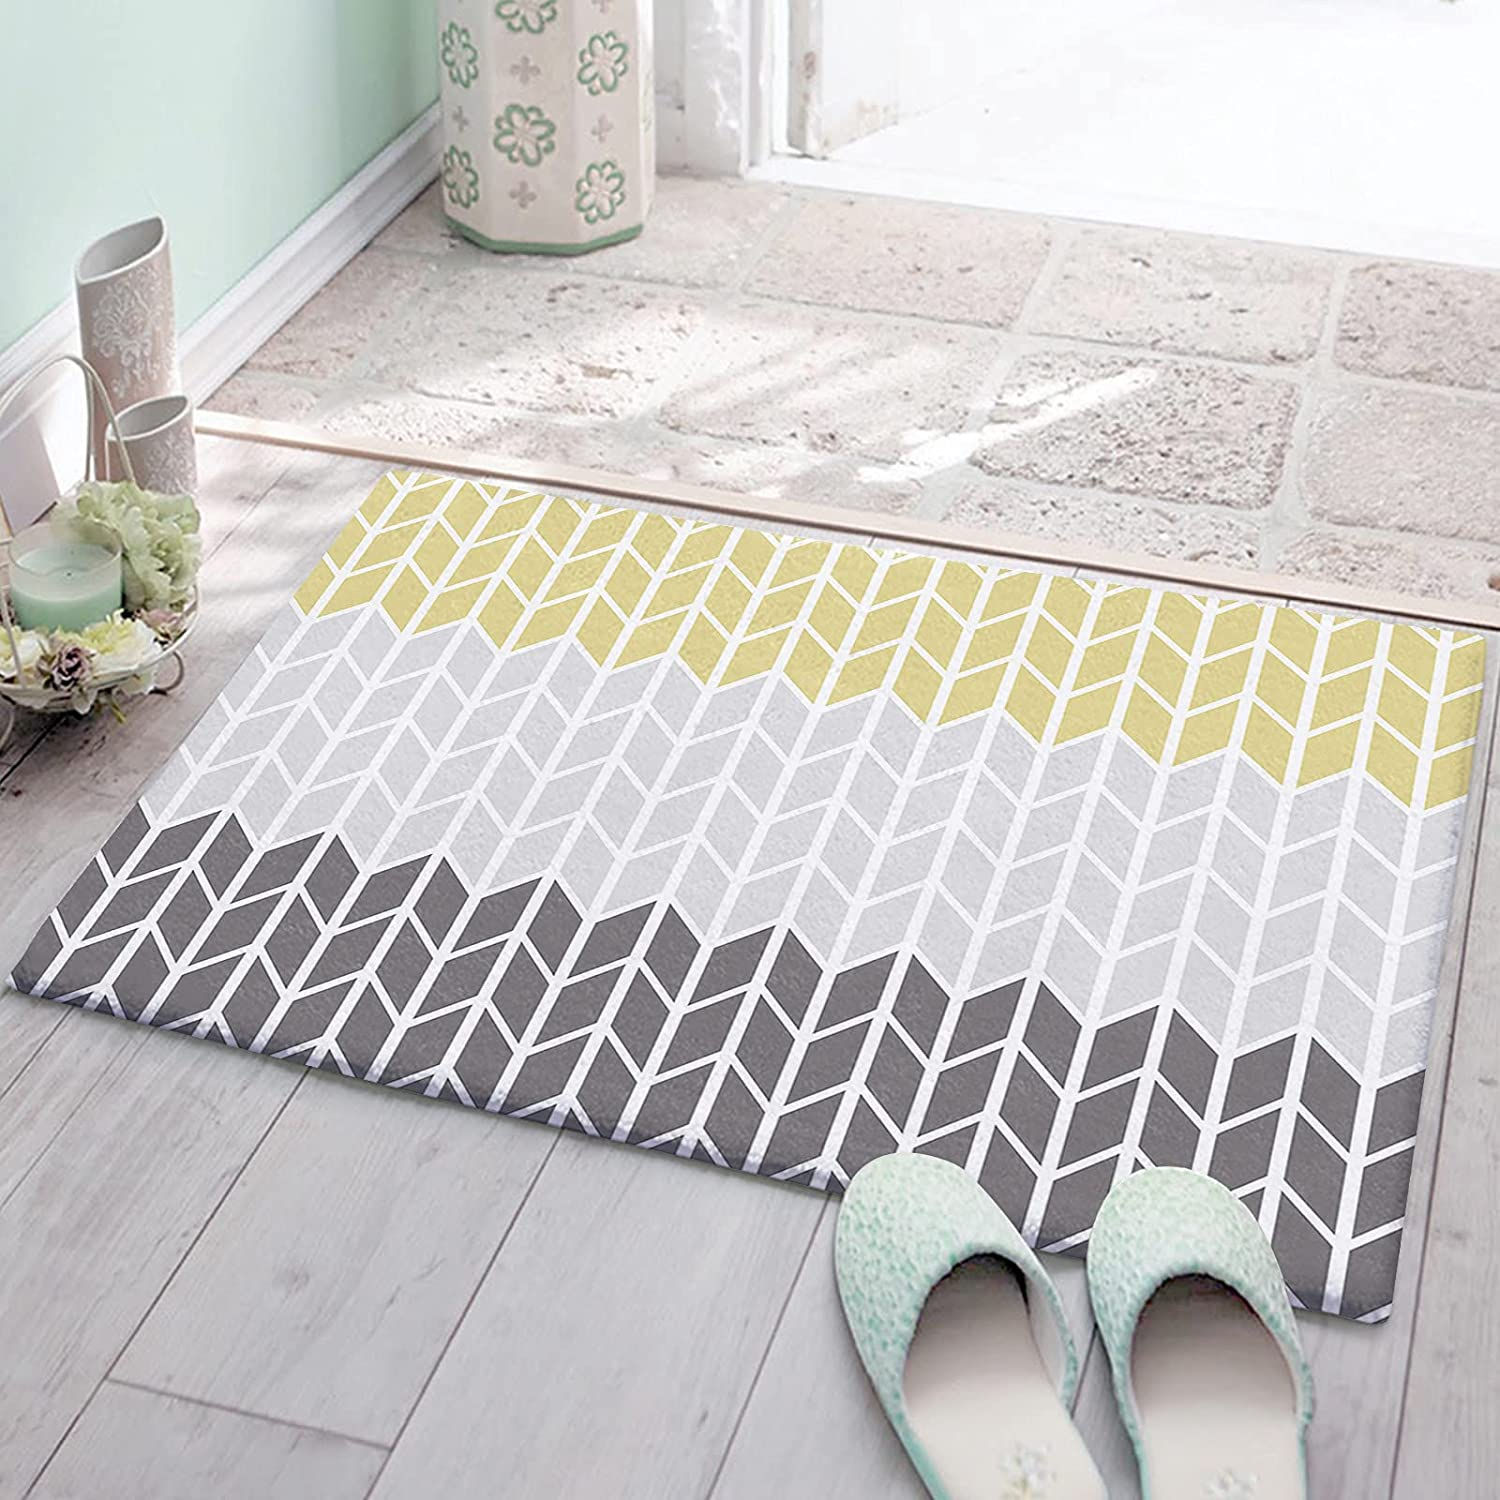 25% OFF Bathroom Large special price !! Rug Soft Plush Mats 35